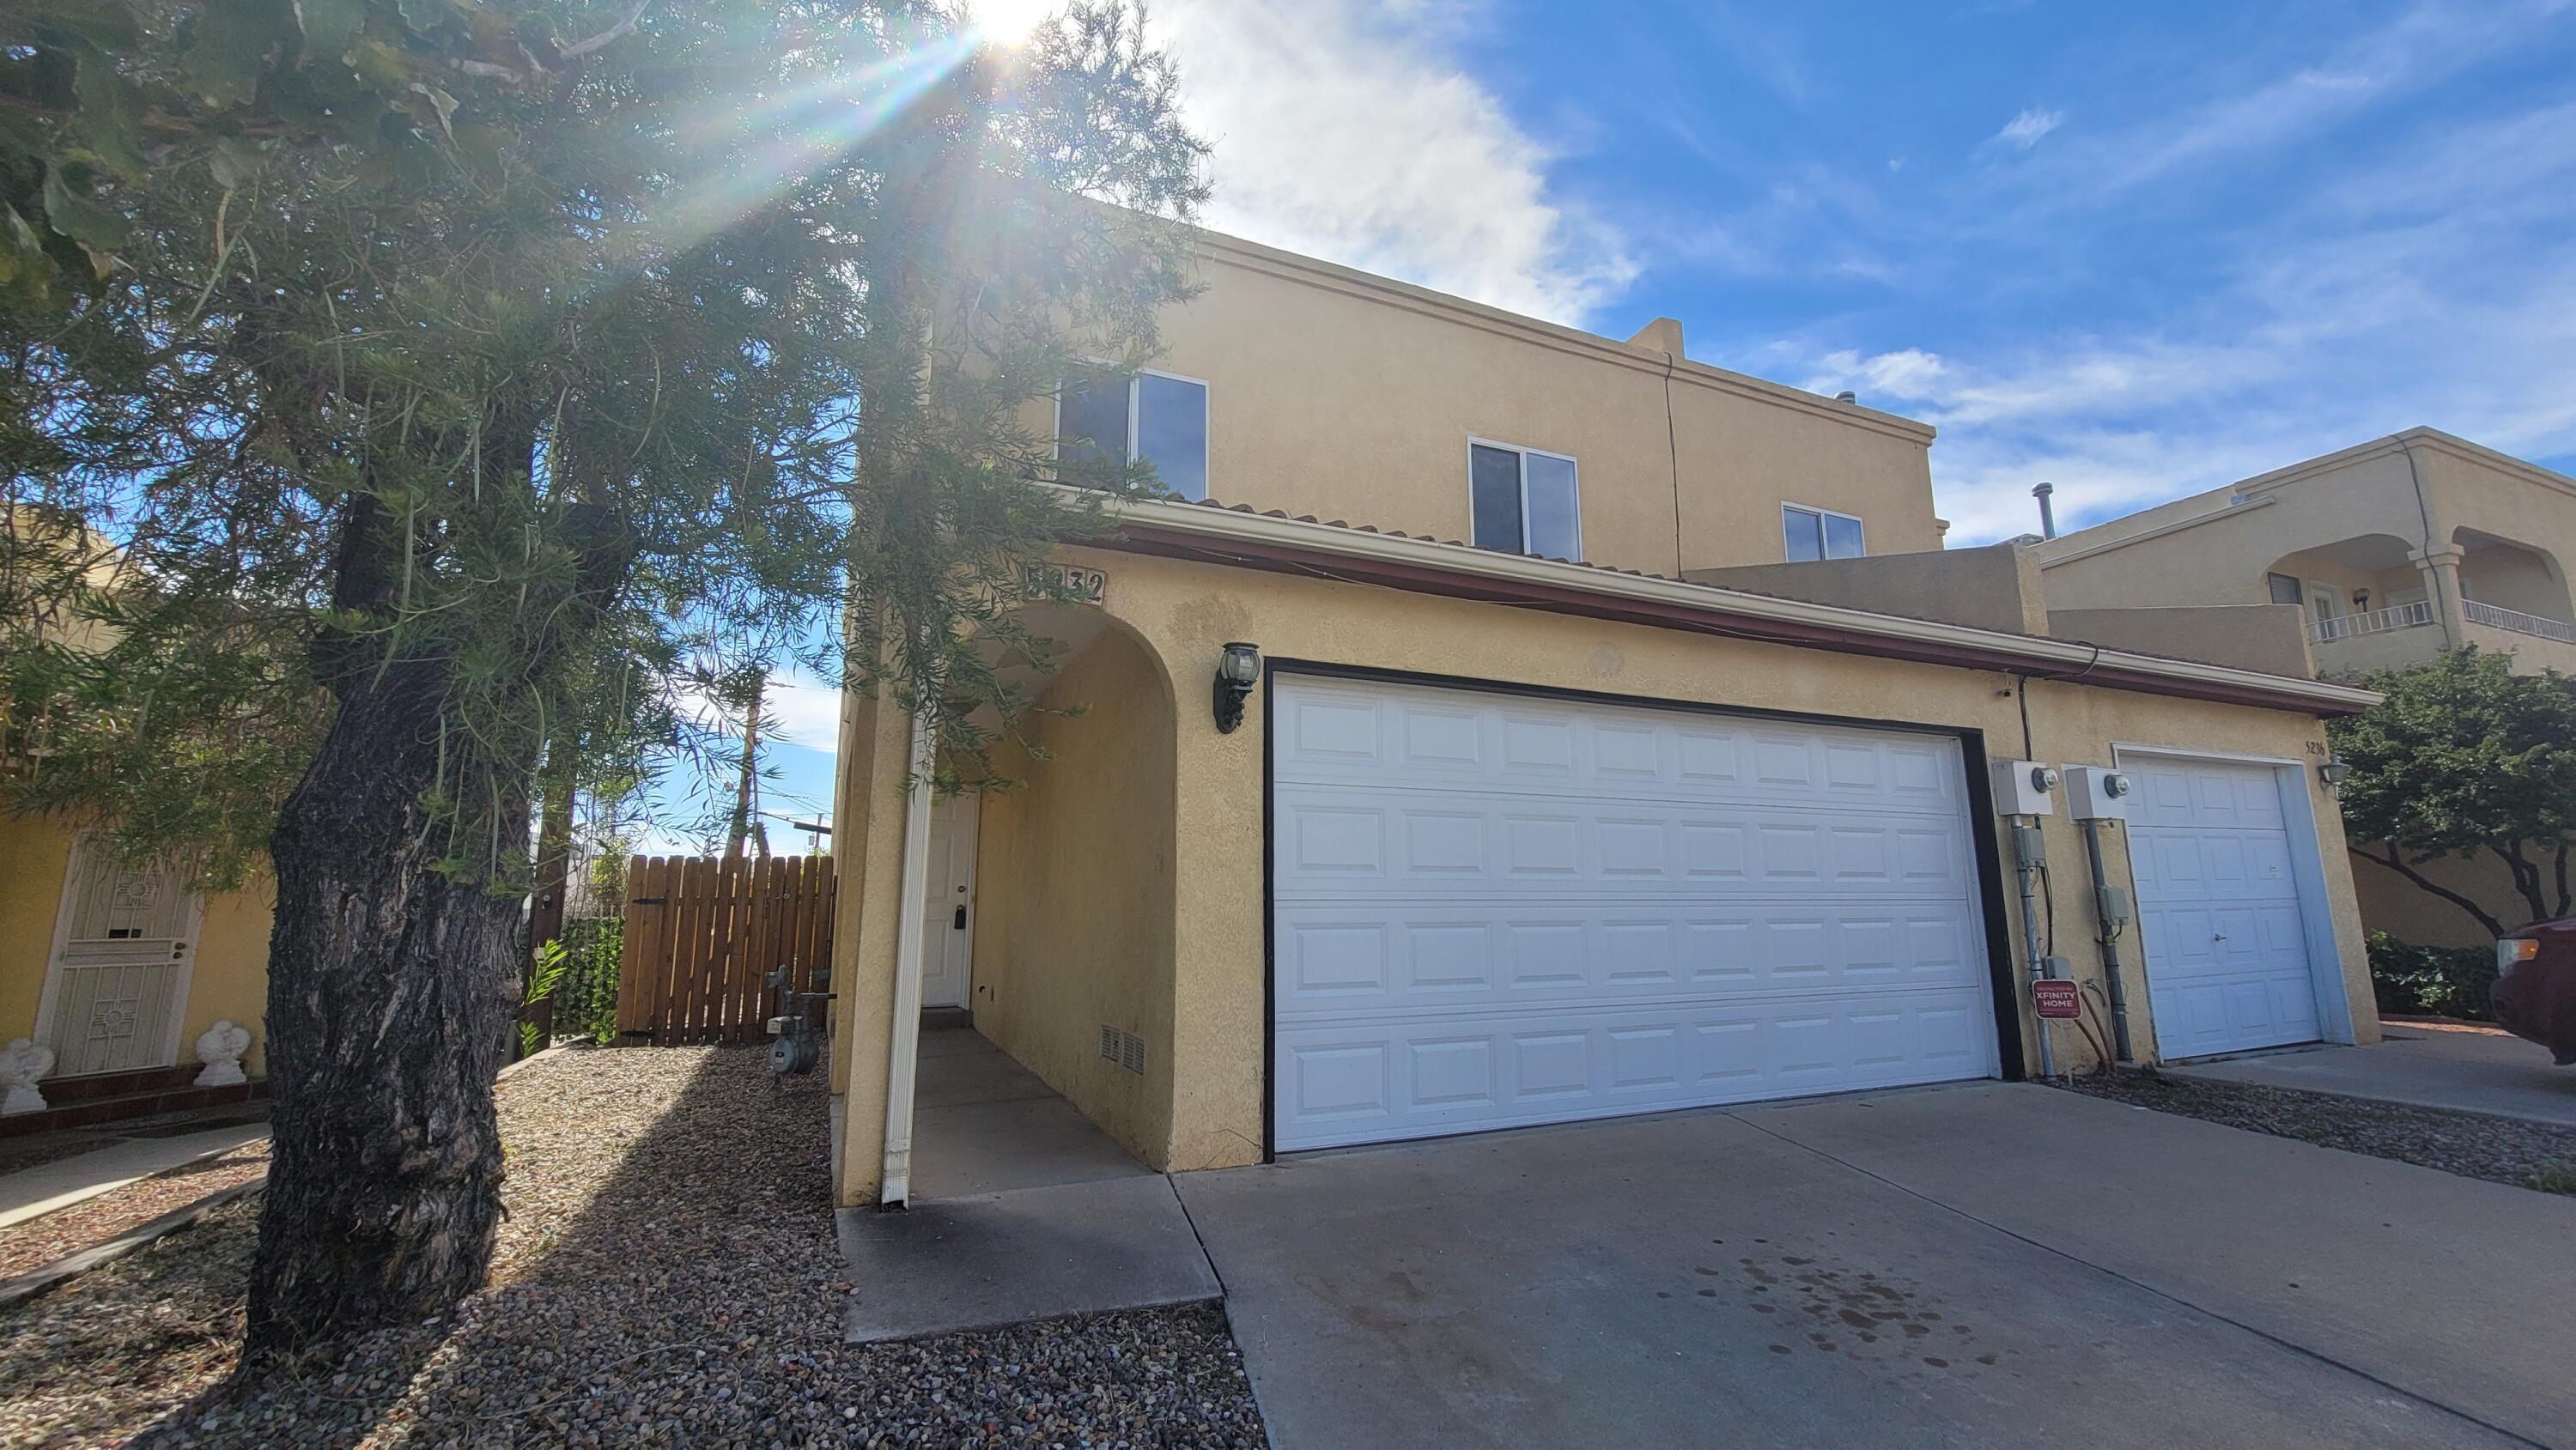 You don't want to miss this 3 bedroom, two bathroom home! Conveniently located near Coors and Central and close to I-40, you have a beautiful view of the Sandia Mountains from the upstairs bedroom. Evaporative Cooler two years old and the east side of the backyard fence replaced.